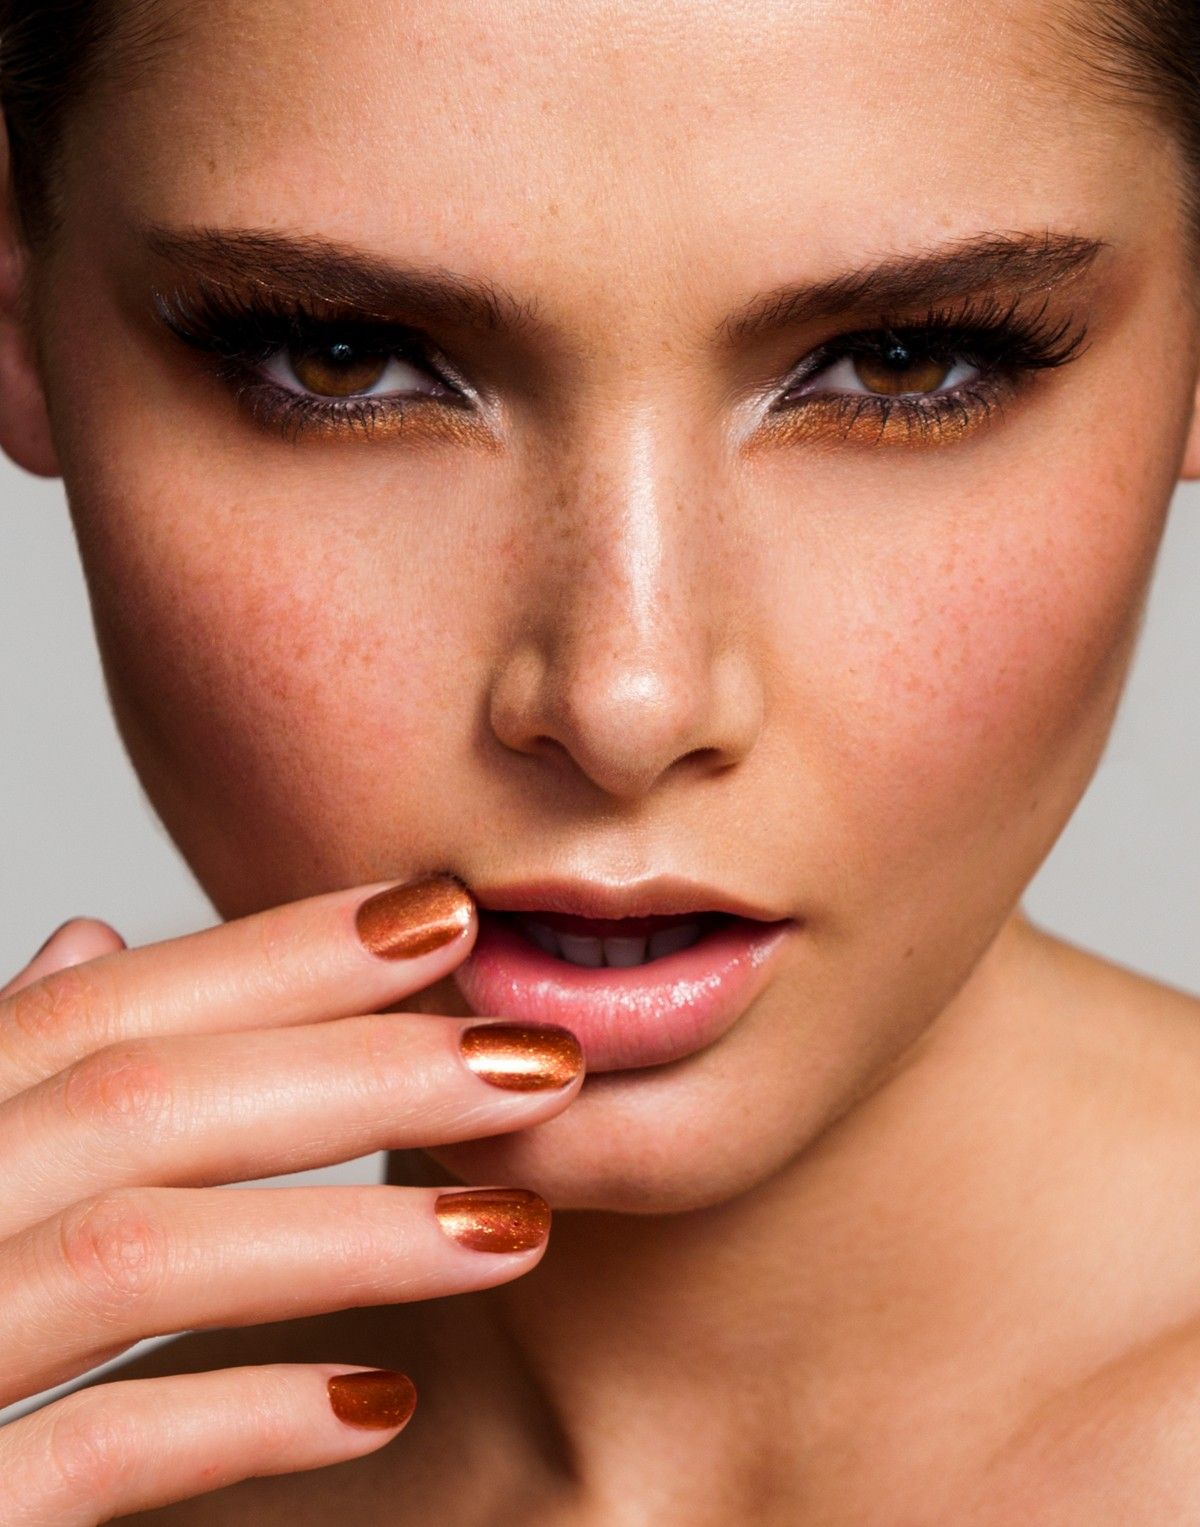 An Interview with NYC Beauty Photographer Jason Setiawan